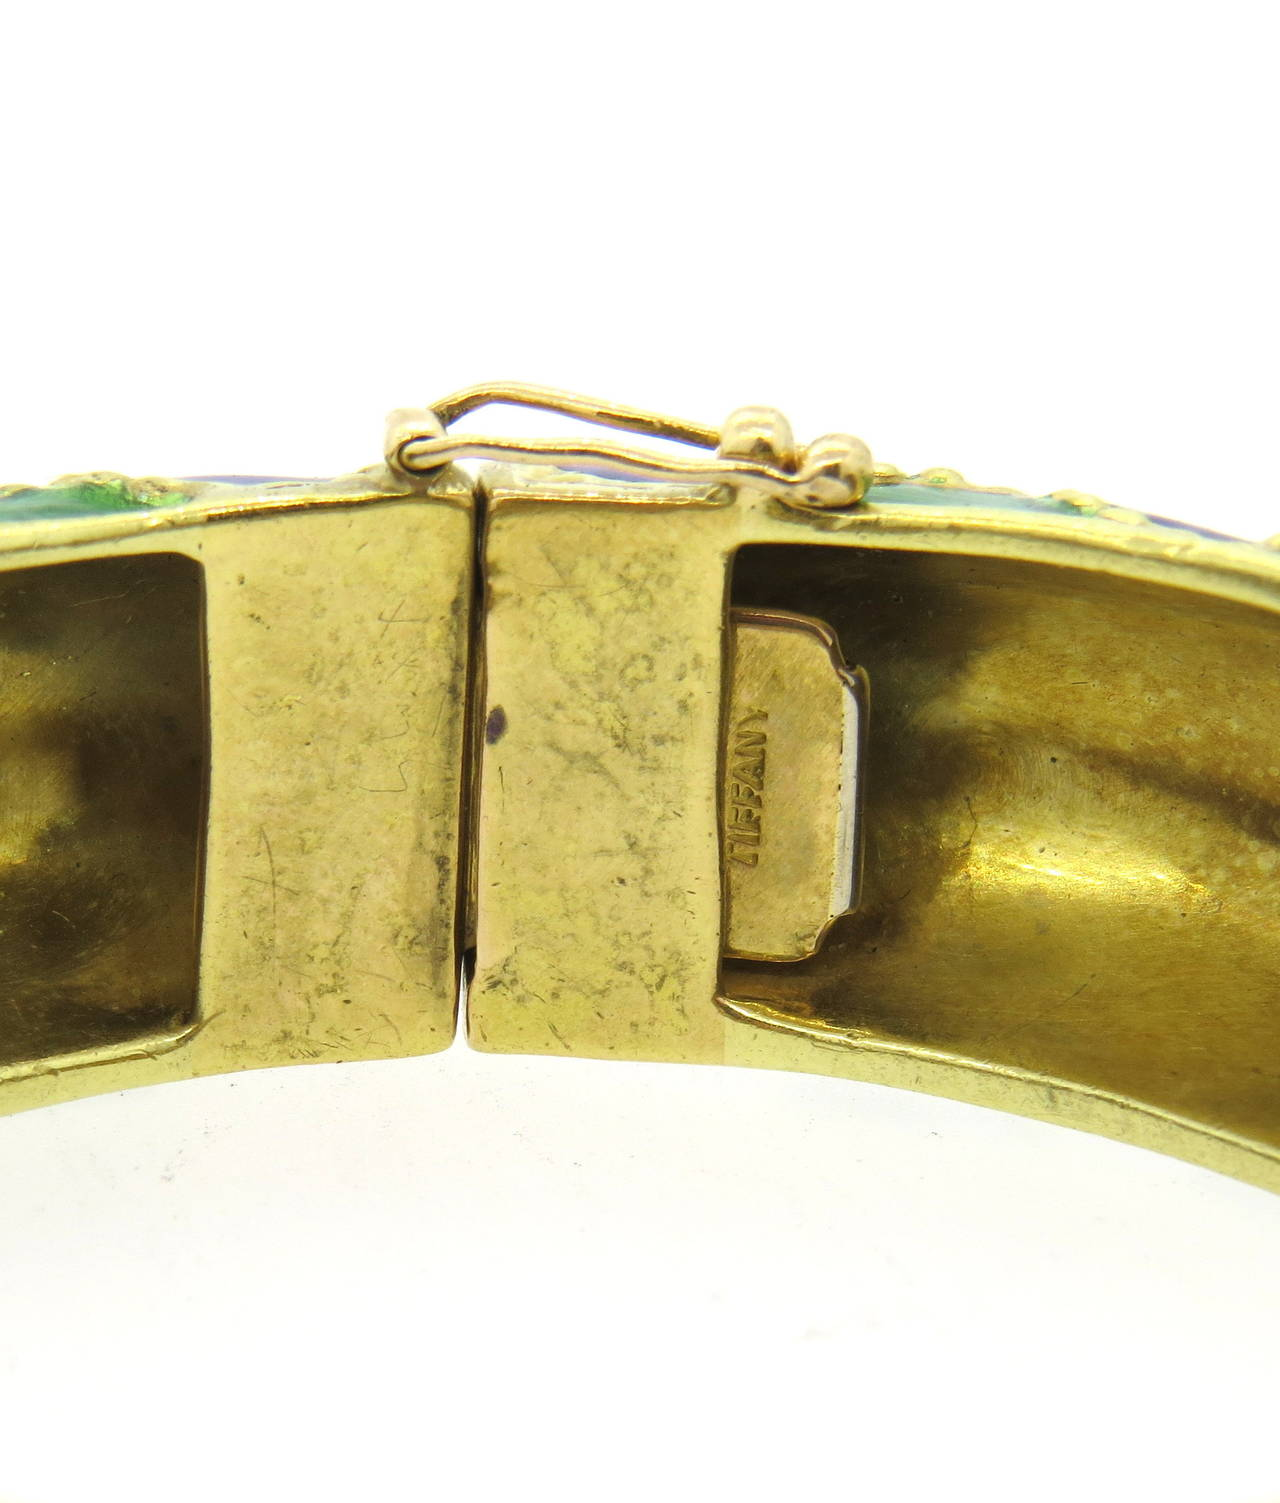 1960s Tiffany & Co Gold Blue Green Enamel Bangle Bracelet In Excellent Condition For Sale In Lahaska, PA